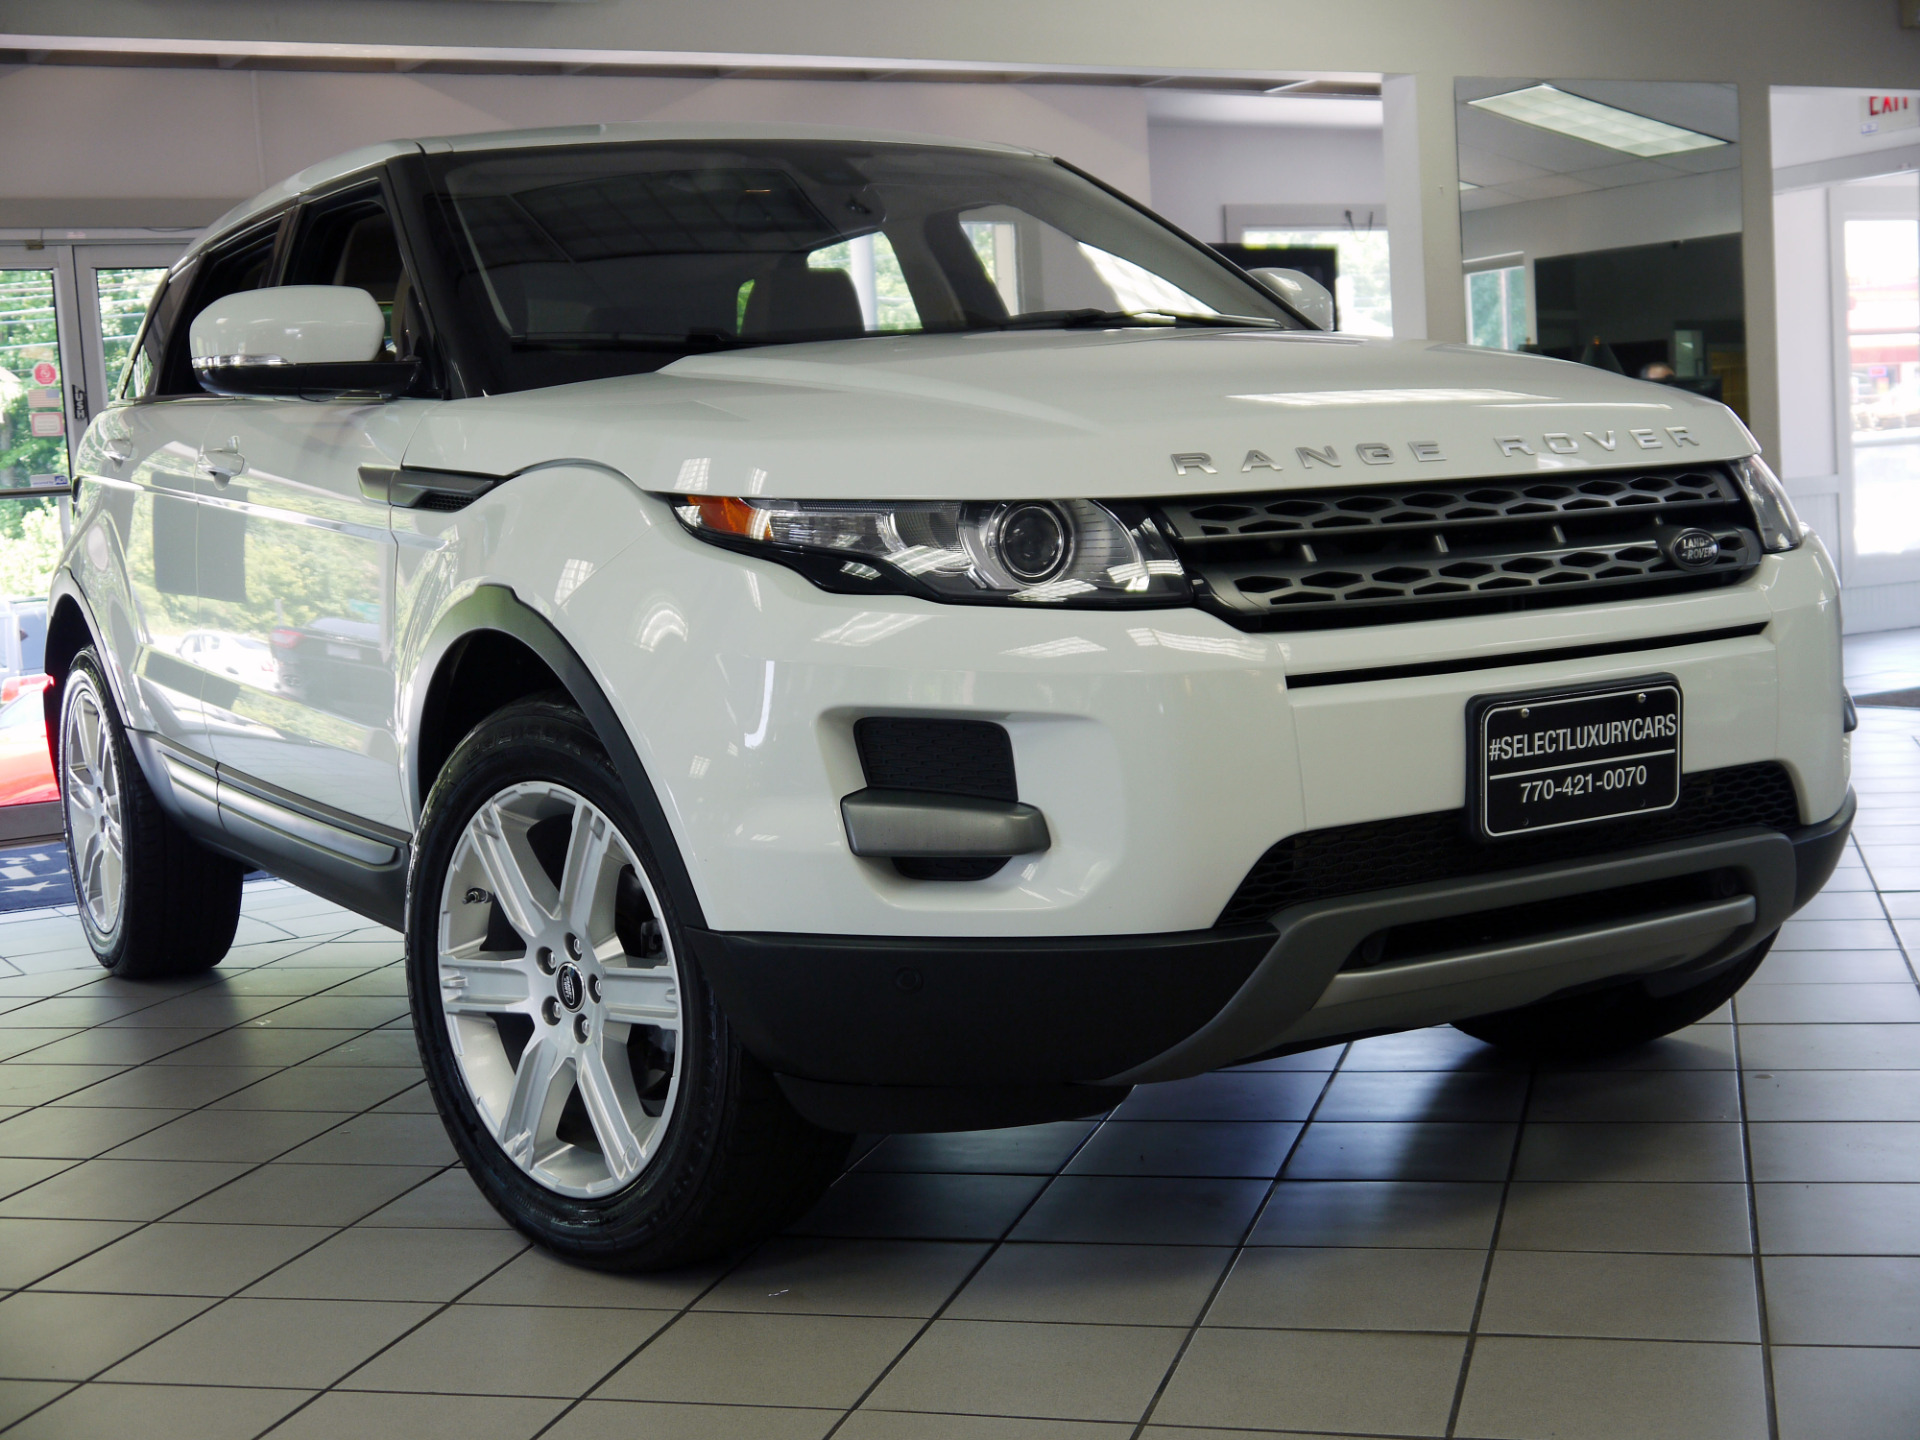 used 2013 land rover range rover evoque pure marietta ga. Black Bedroom Furniture Sets. Home Design Ideas